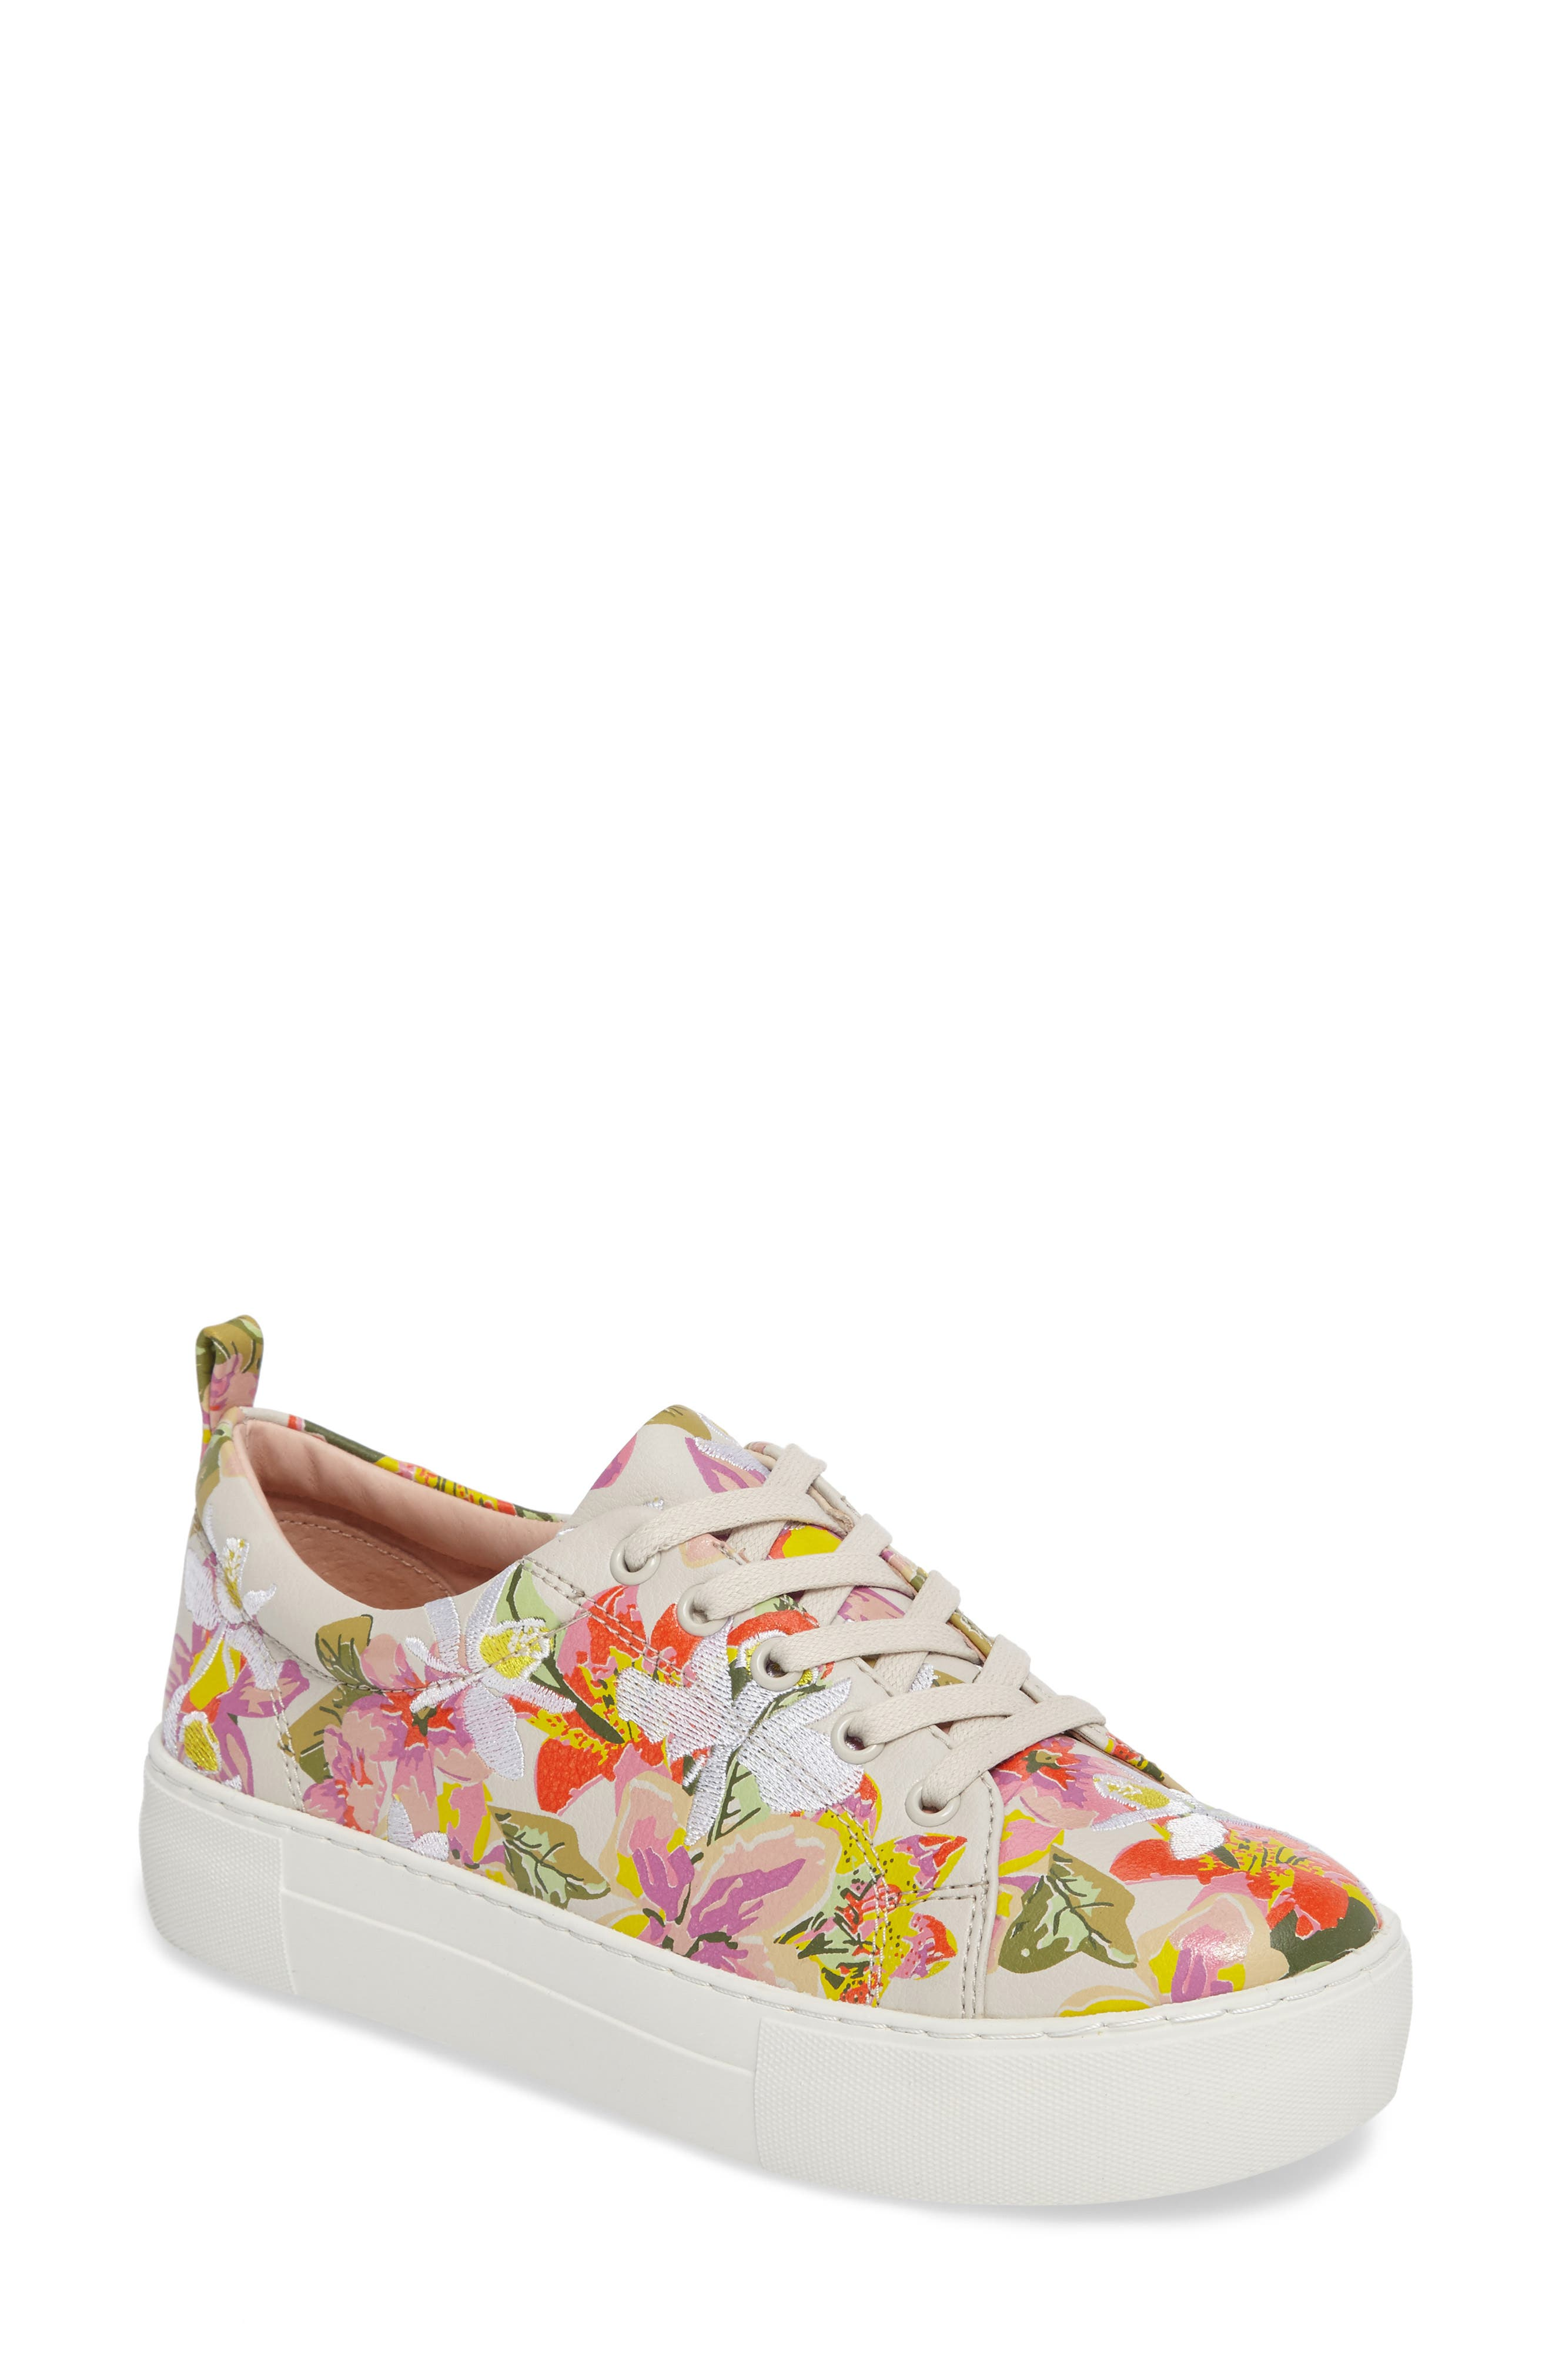 Appy Embroidered Platform Sneaker,                             Main thumbnail 1, color,